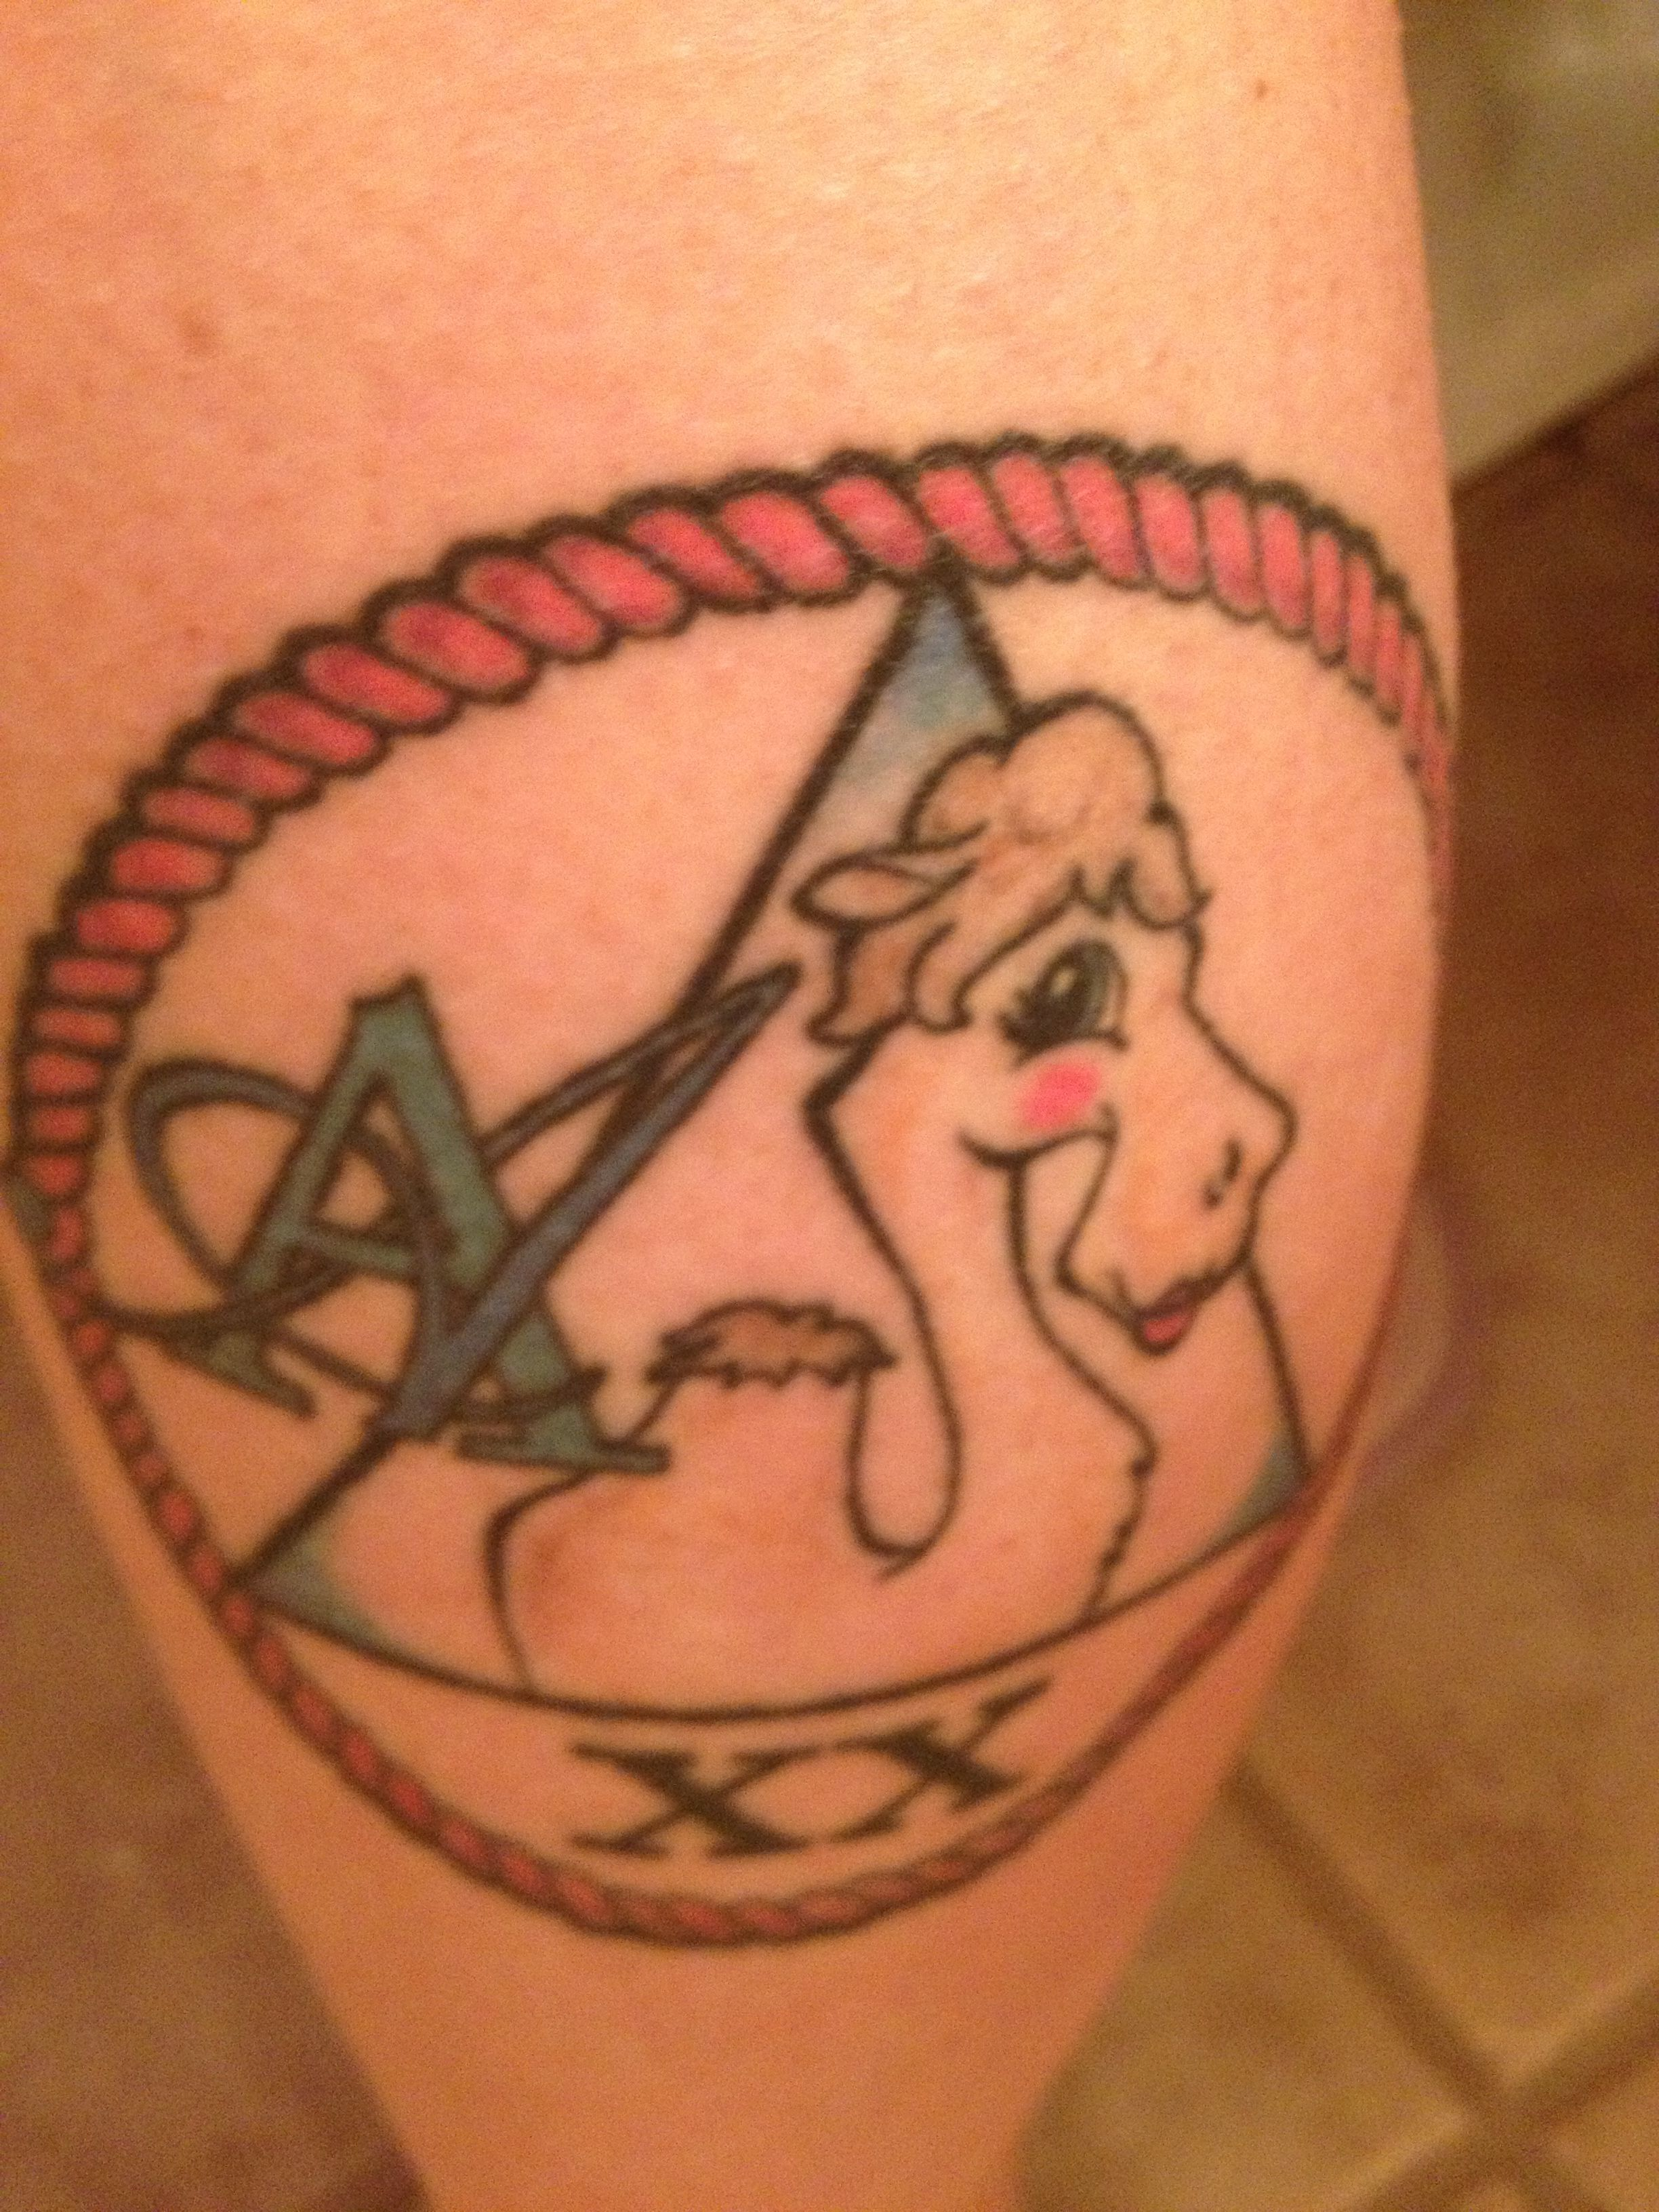 Twenty Year Recovery Tattoo Inspiration From Dr Bob S Ideas And Designs